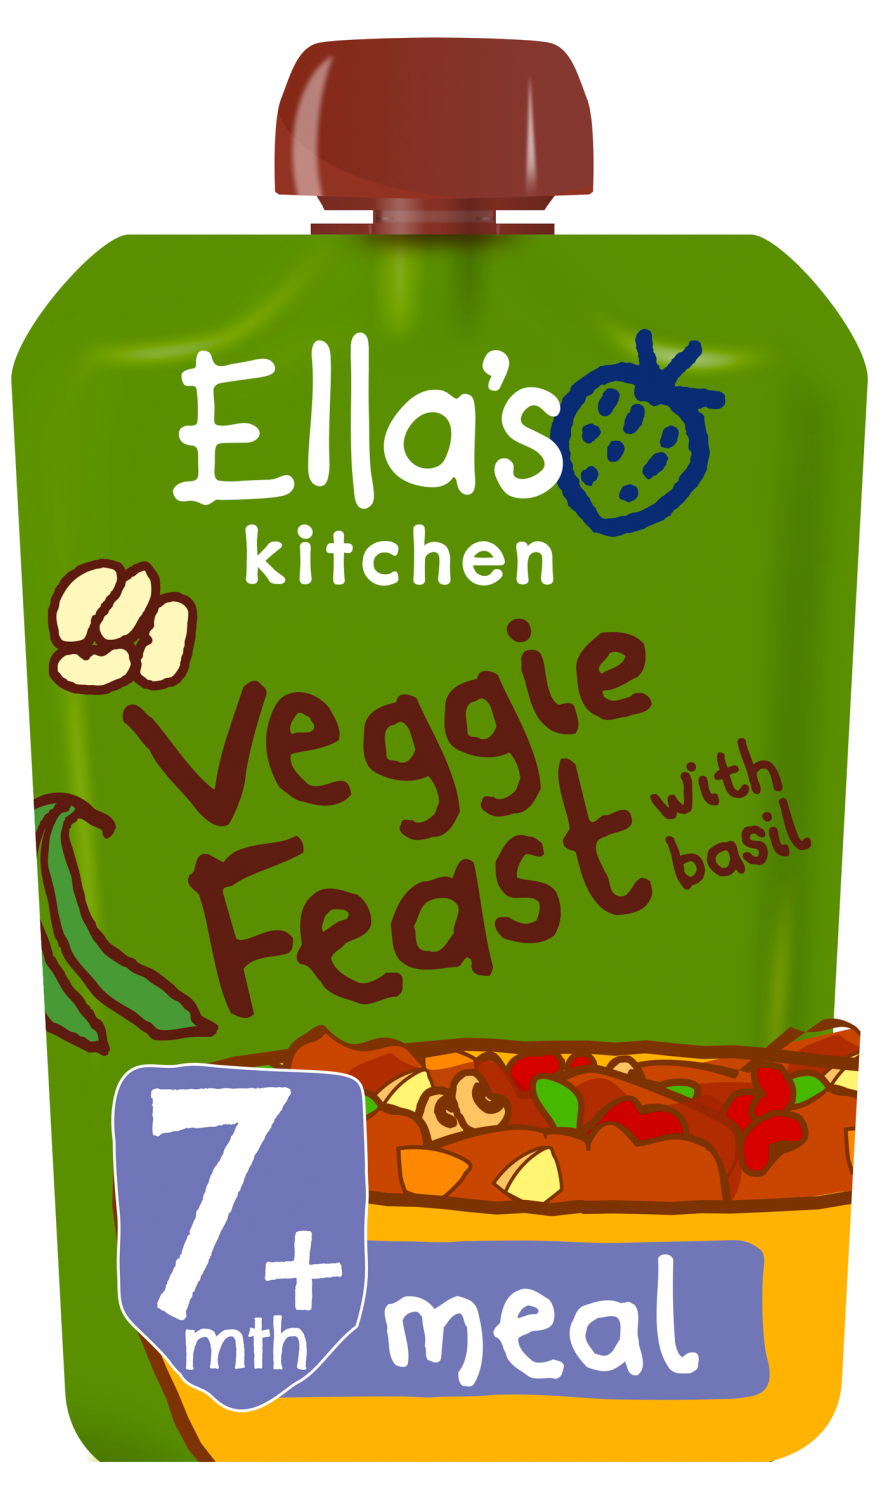 Ellas kitchen veggie feast basil pouch 7 months front of pack O